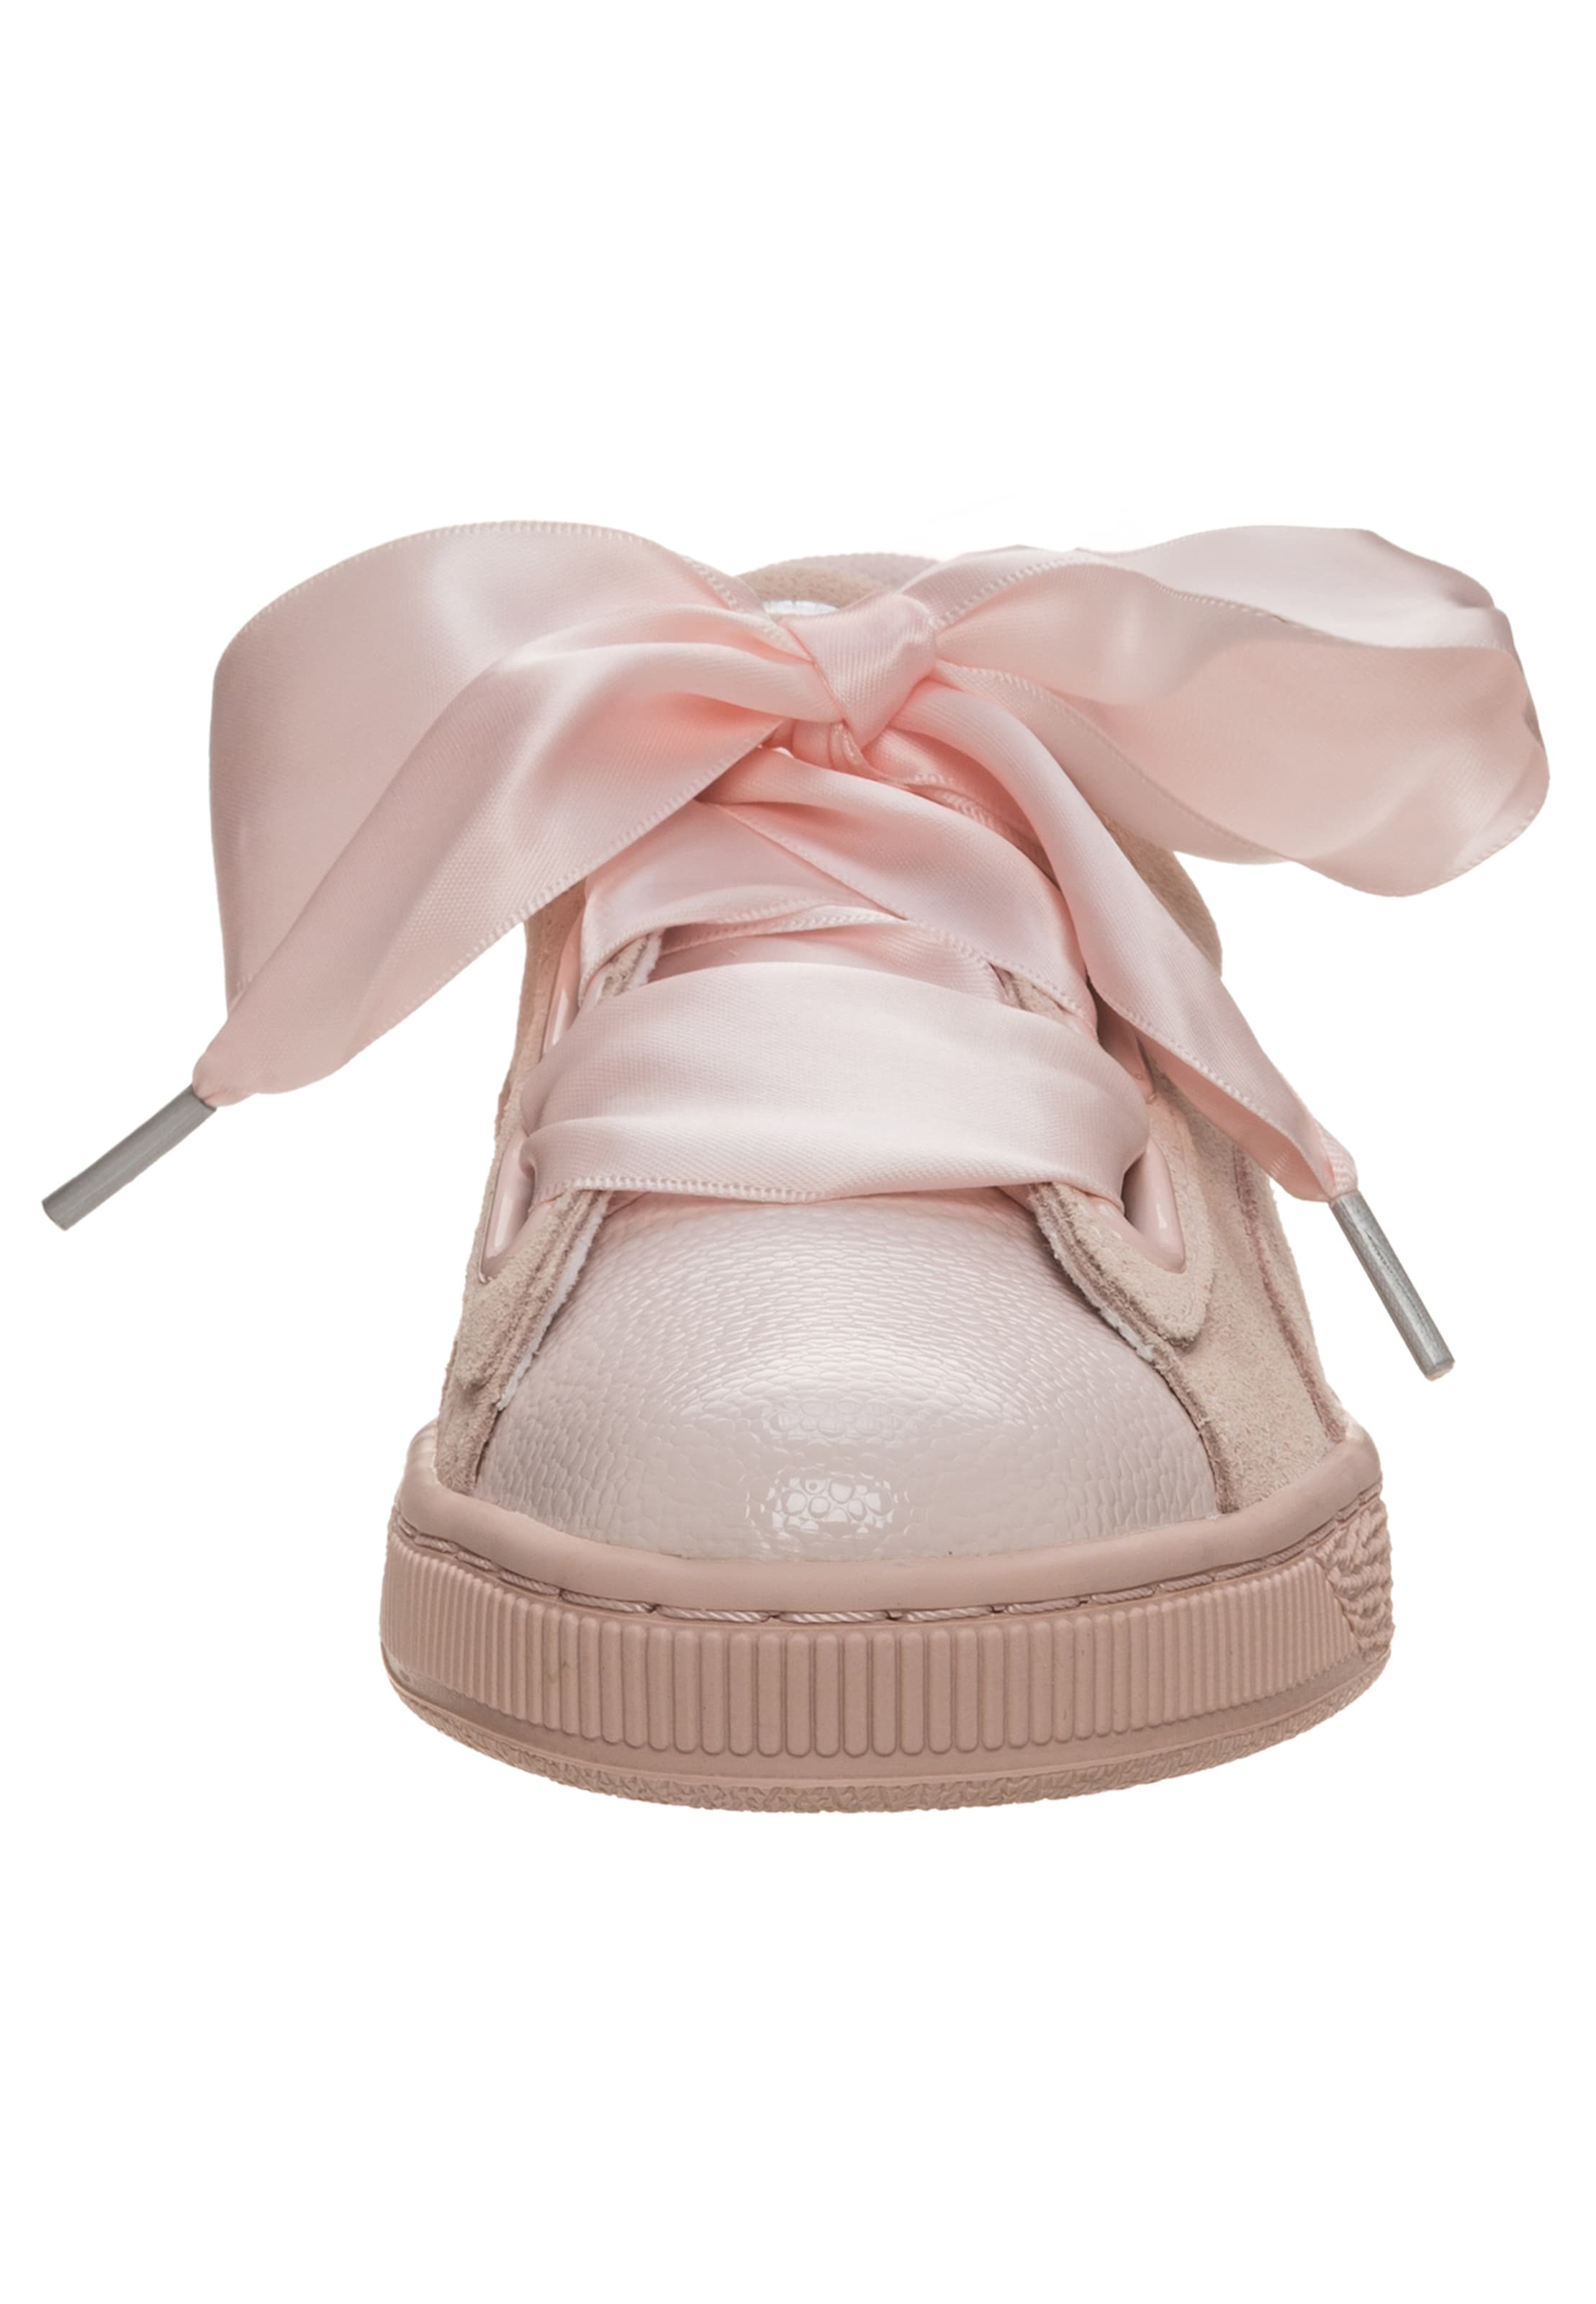 En Basses Bubble' Puma Baskets Rose 'suede Heart Ancienne xtBhroQdsC